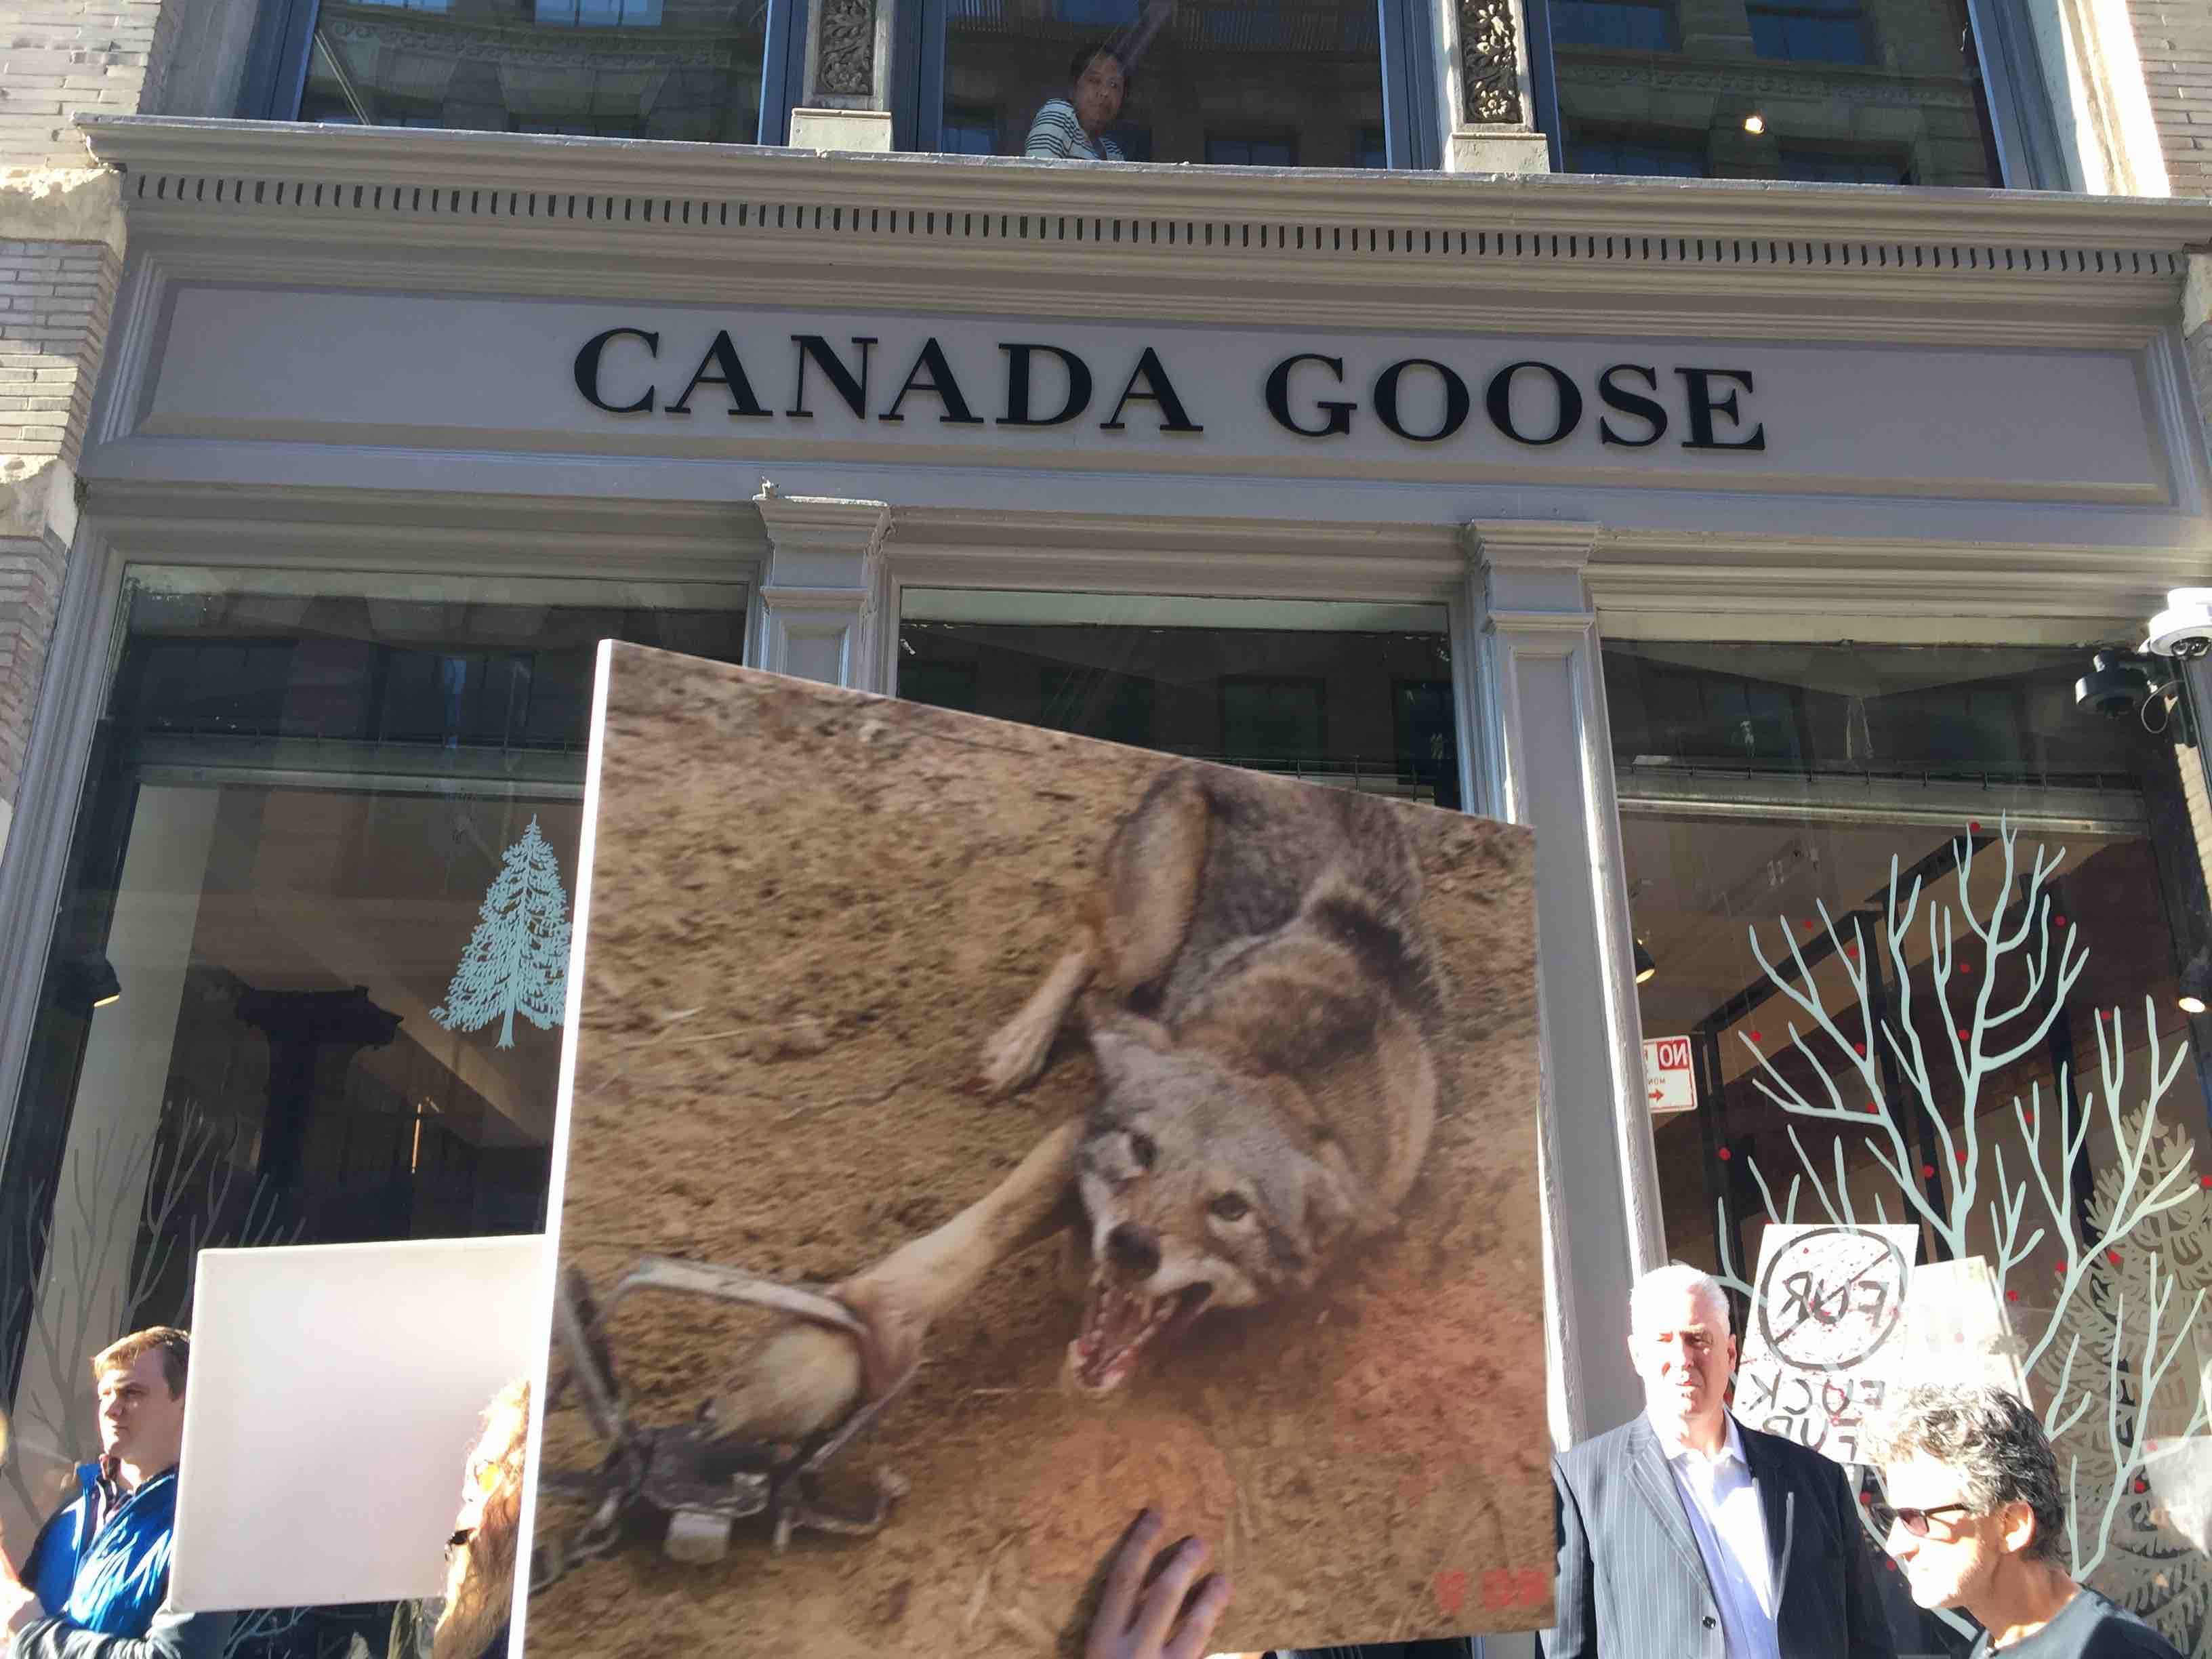 Protest on the opening day of the Canada Goose store in NYC